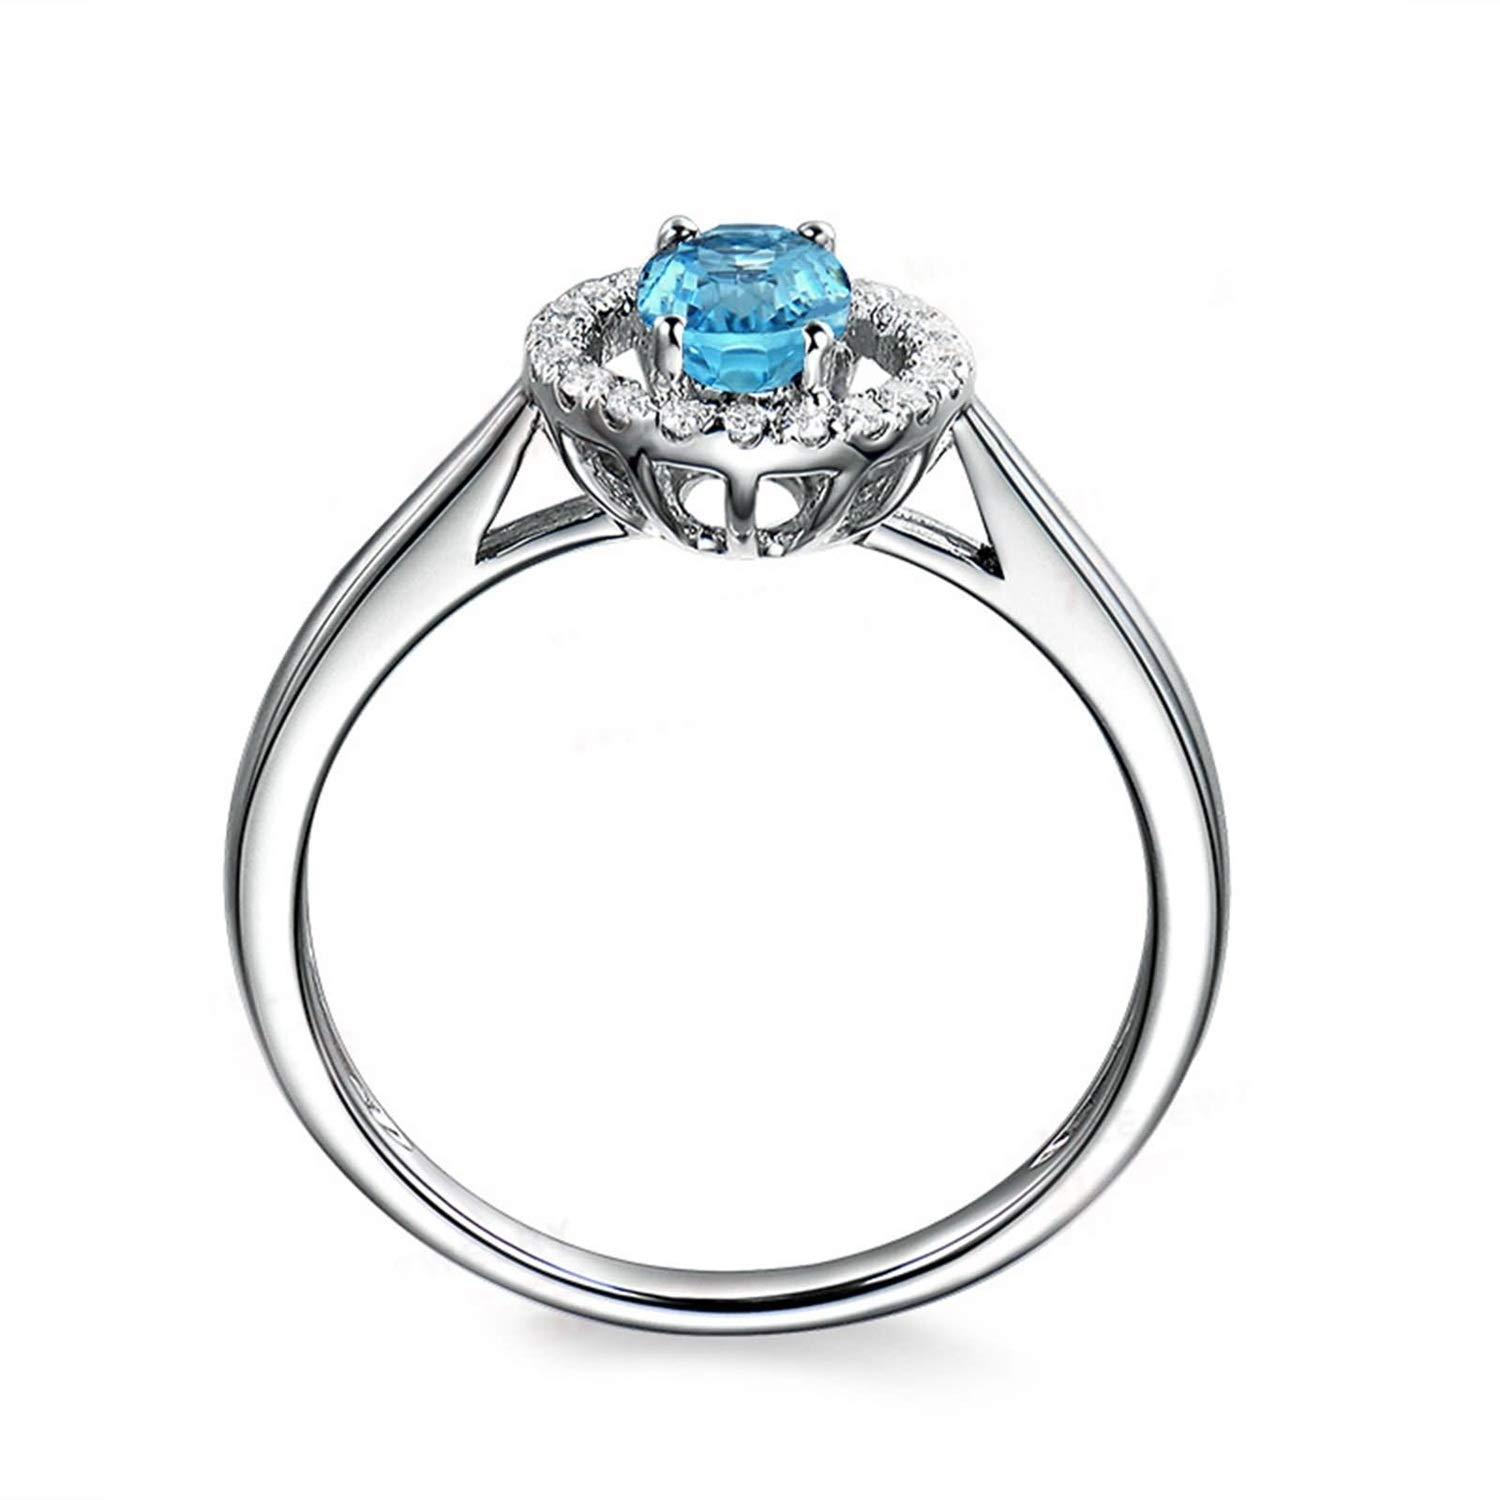 AMDXD Jewellery 925 Sterling Silver Promise Ring for Women Oval Cut Topaz Round Rings